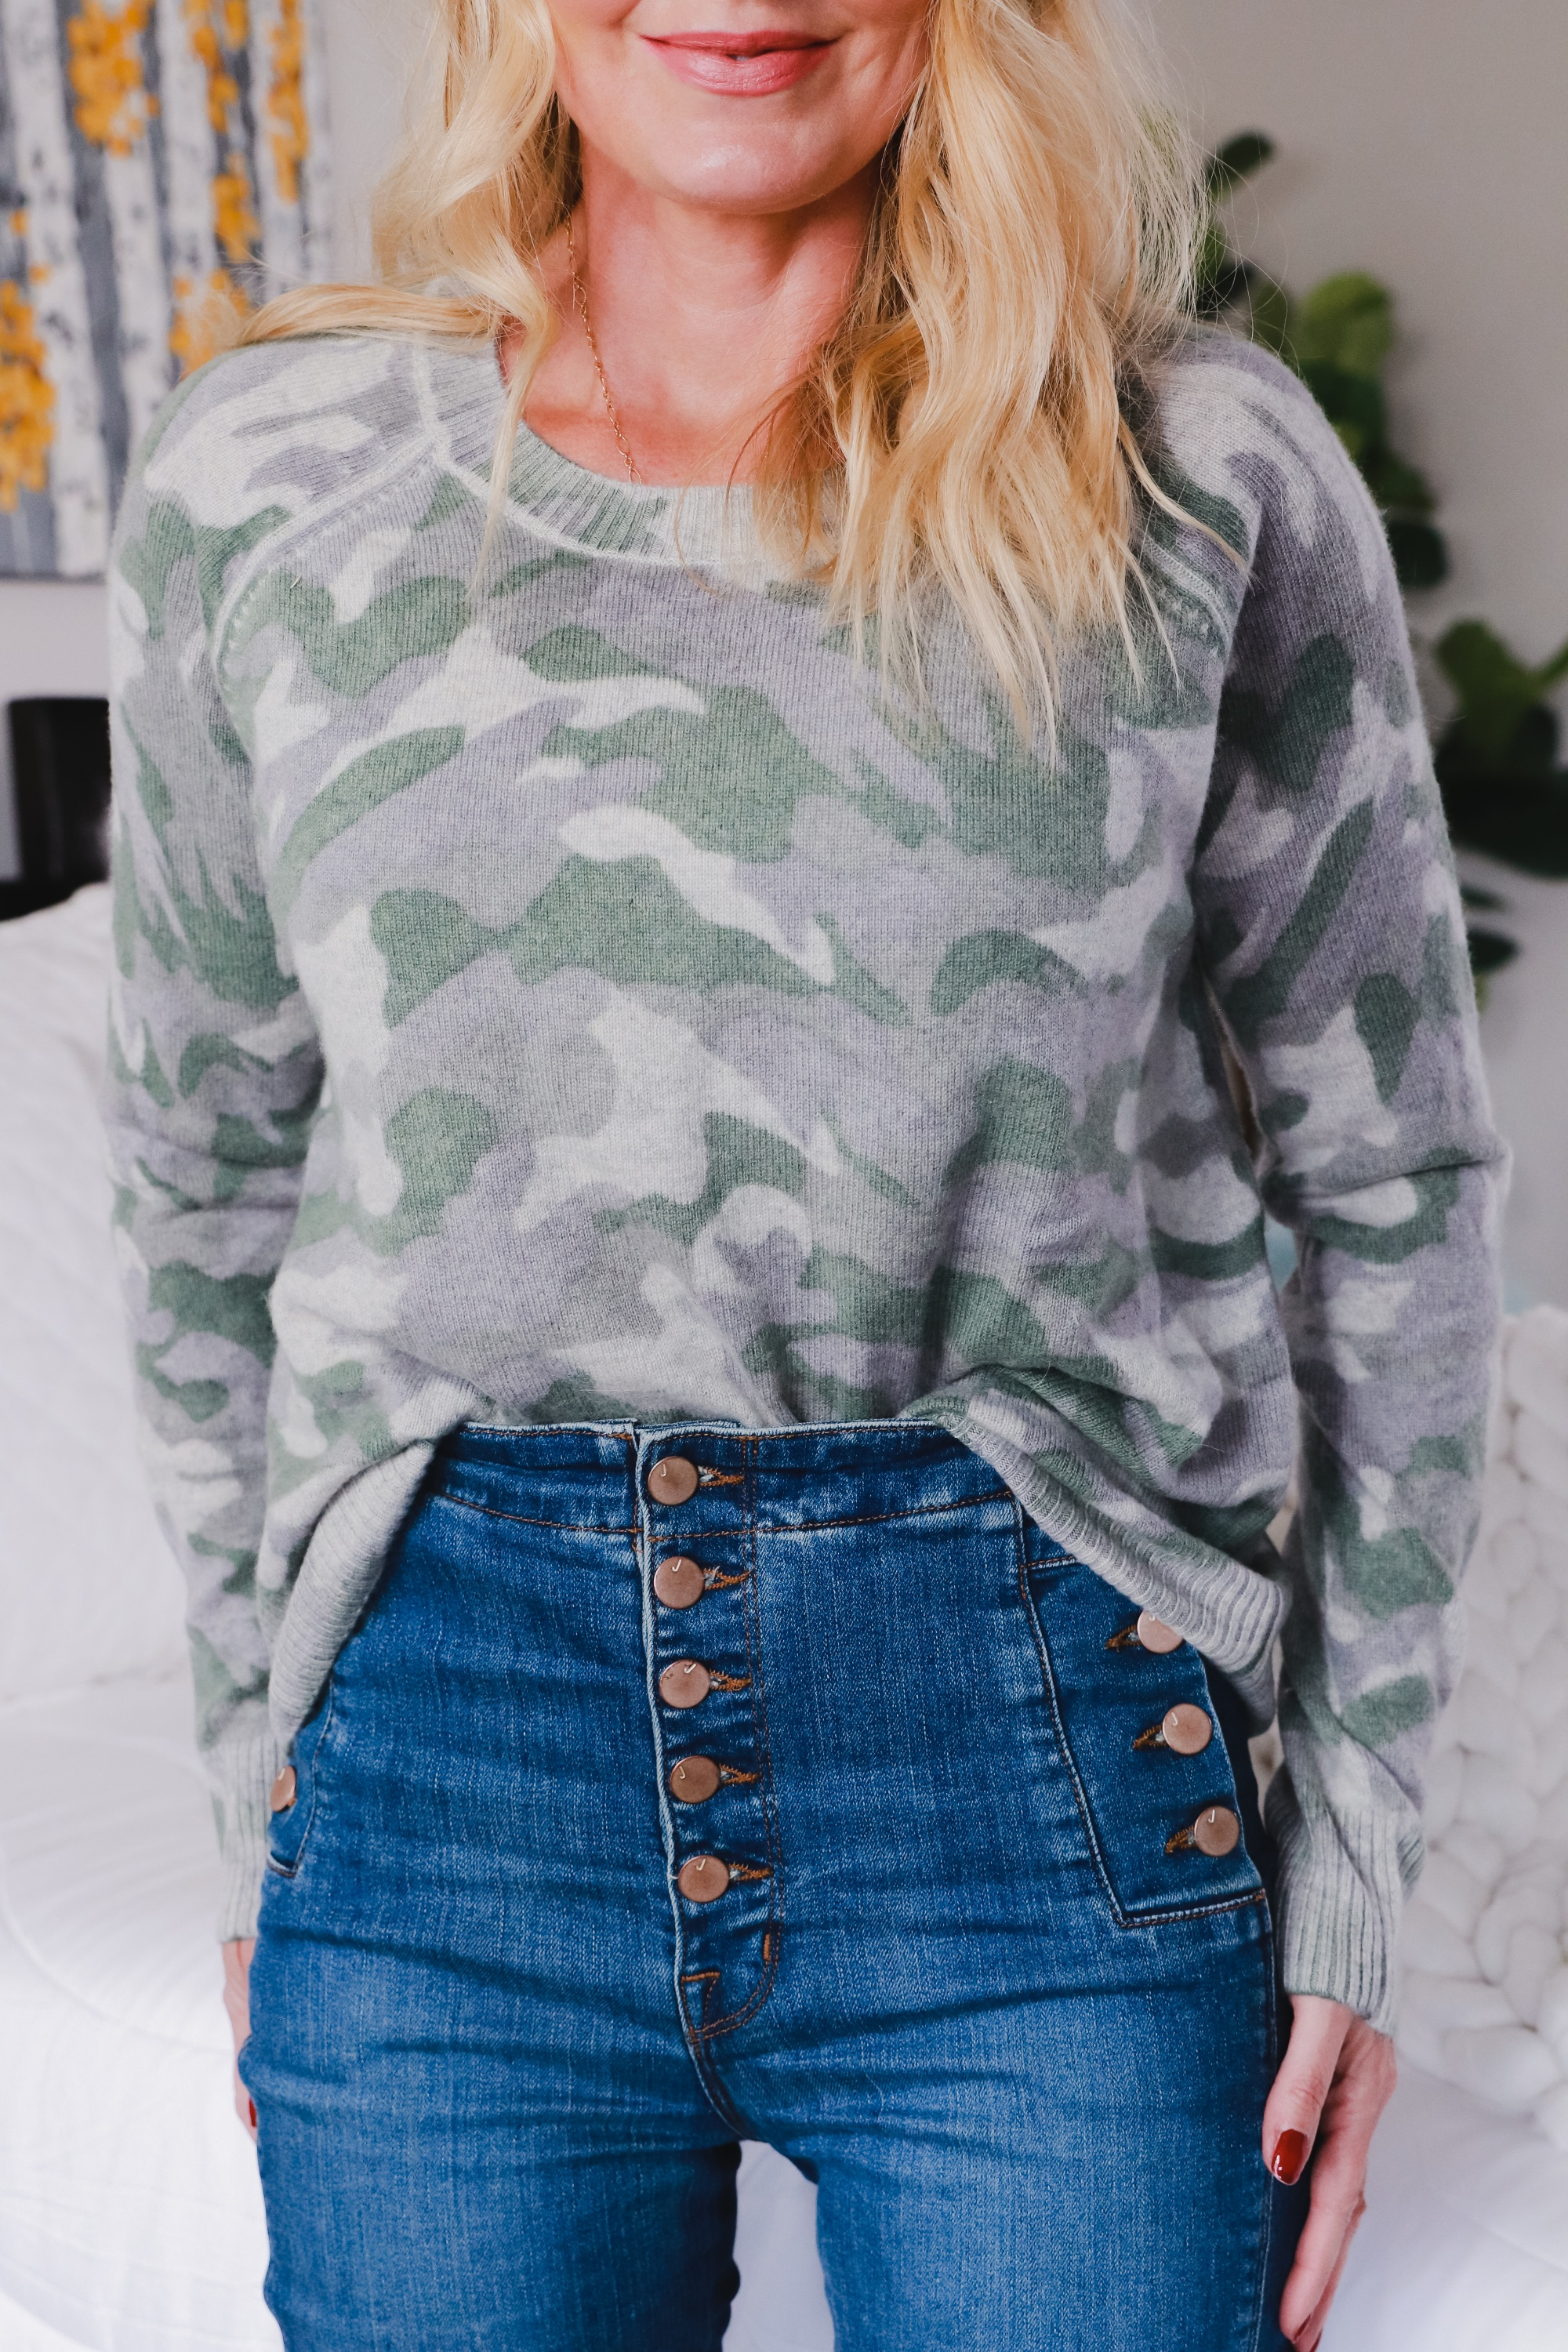 affordable women's cashmere sweaters, Aqua Cashmere Sweater, fashion blogger Busbee Style wearing green camo cashmere sweater with J Brand Natasha jeans